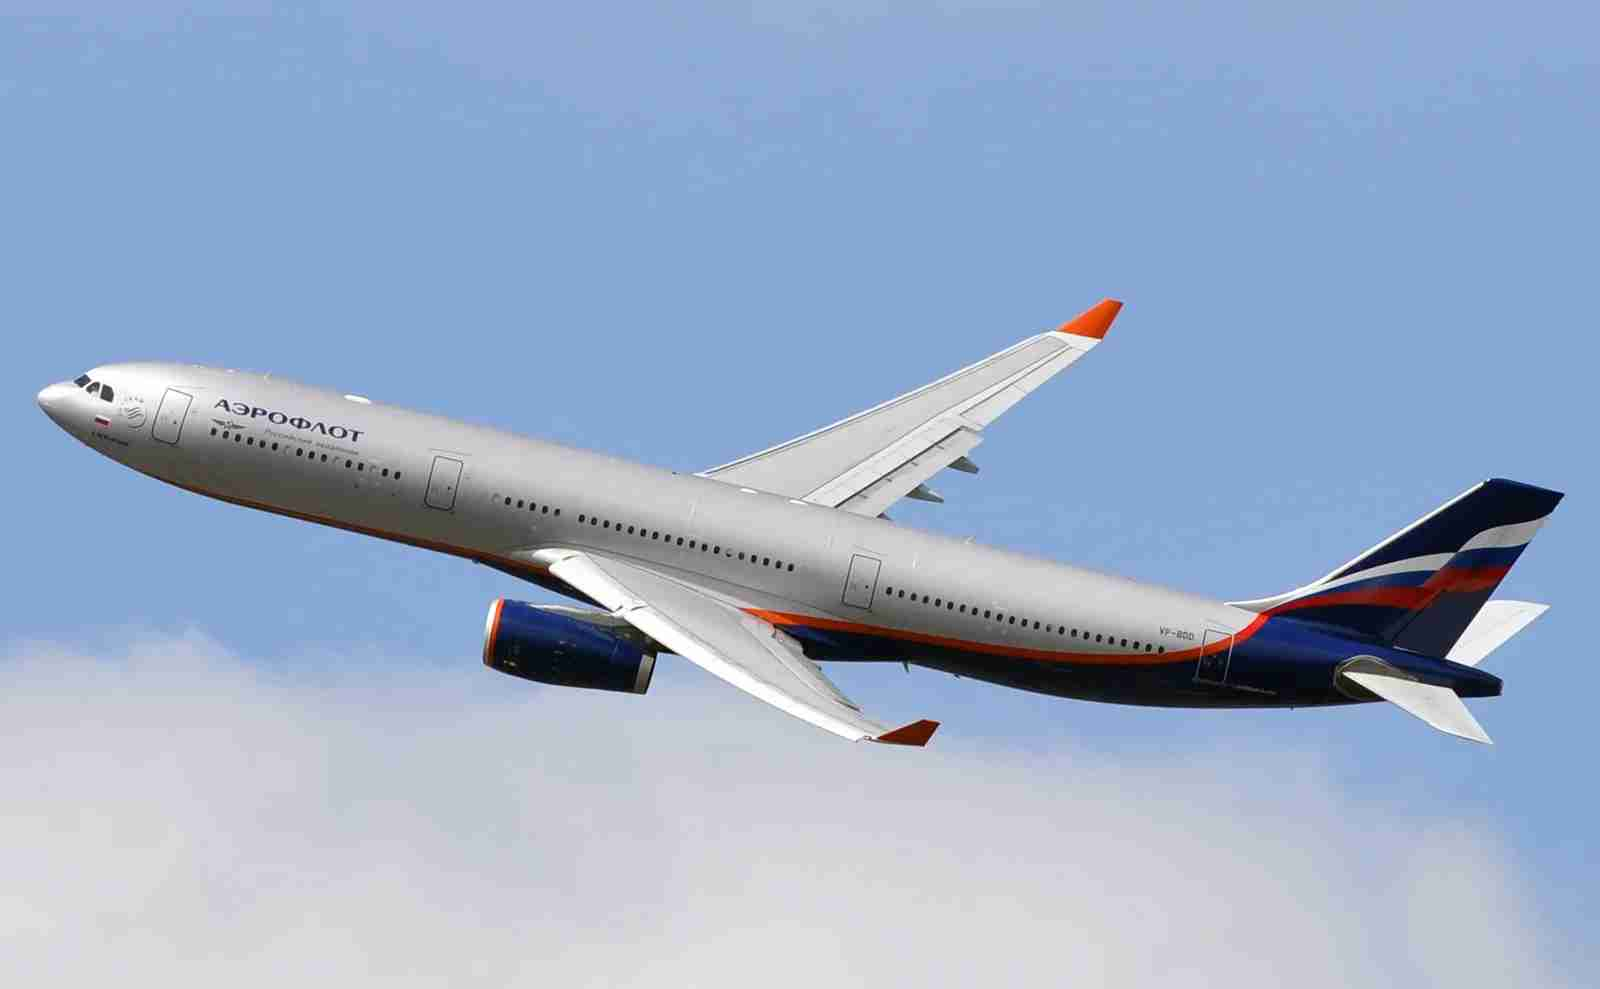 An Aeroflot A330 taking off from JFK airport in New York in 2015 (Photo by Alberto Riva/The Points Guy)